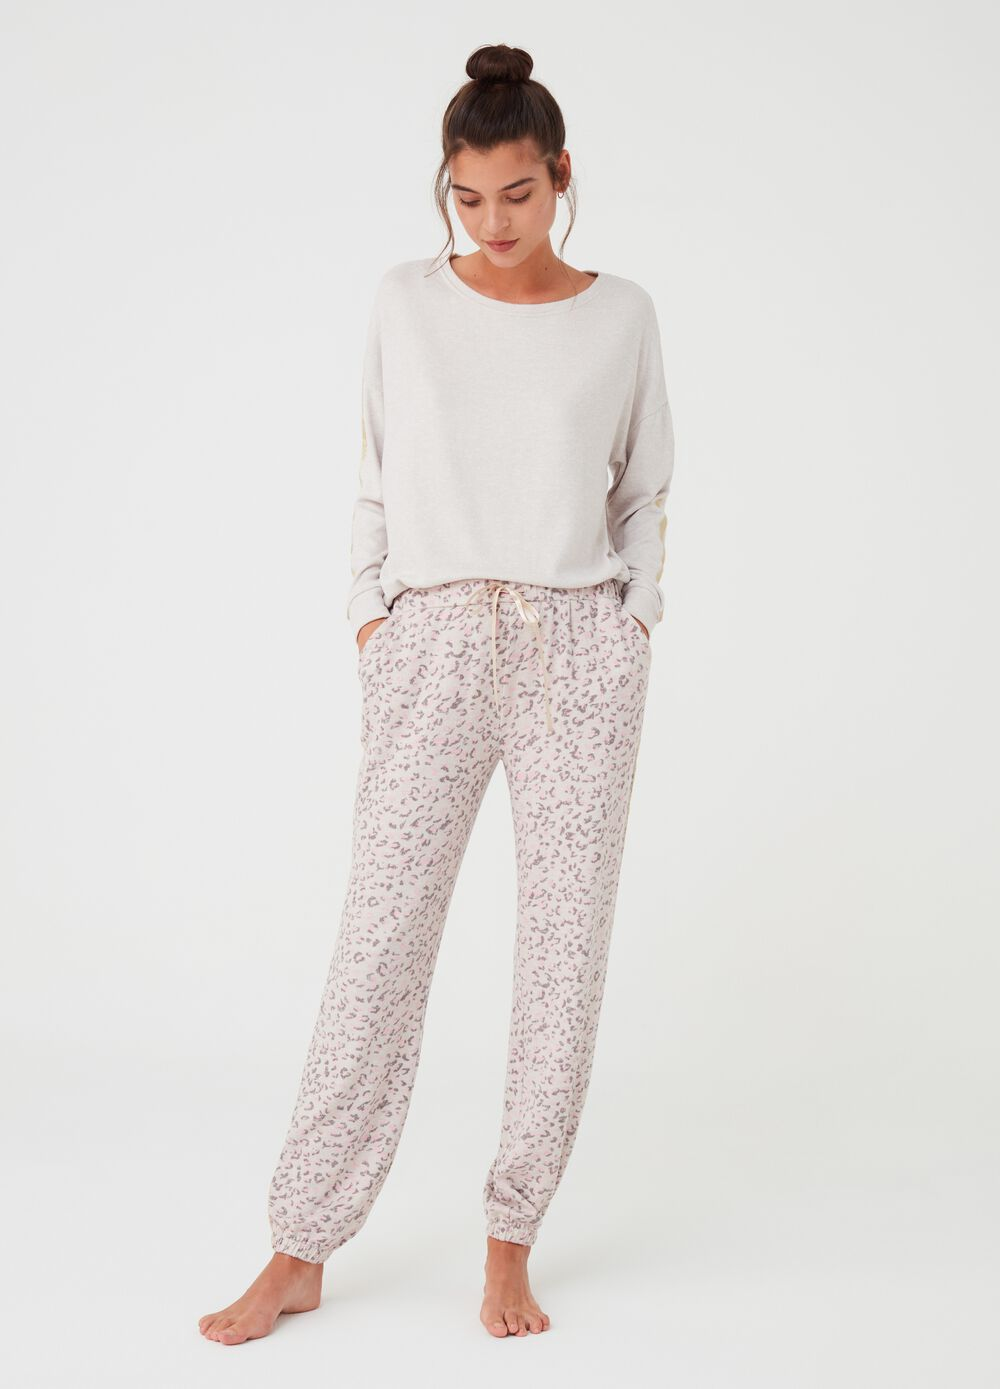 Pyjama trousers with animal print pattern